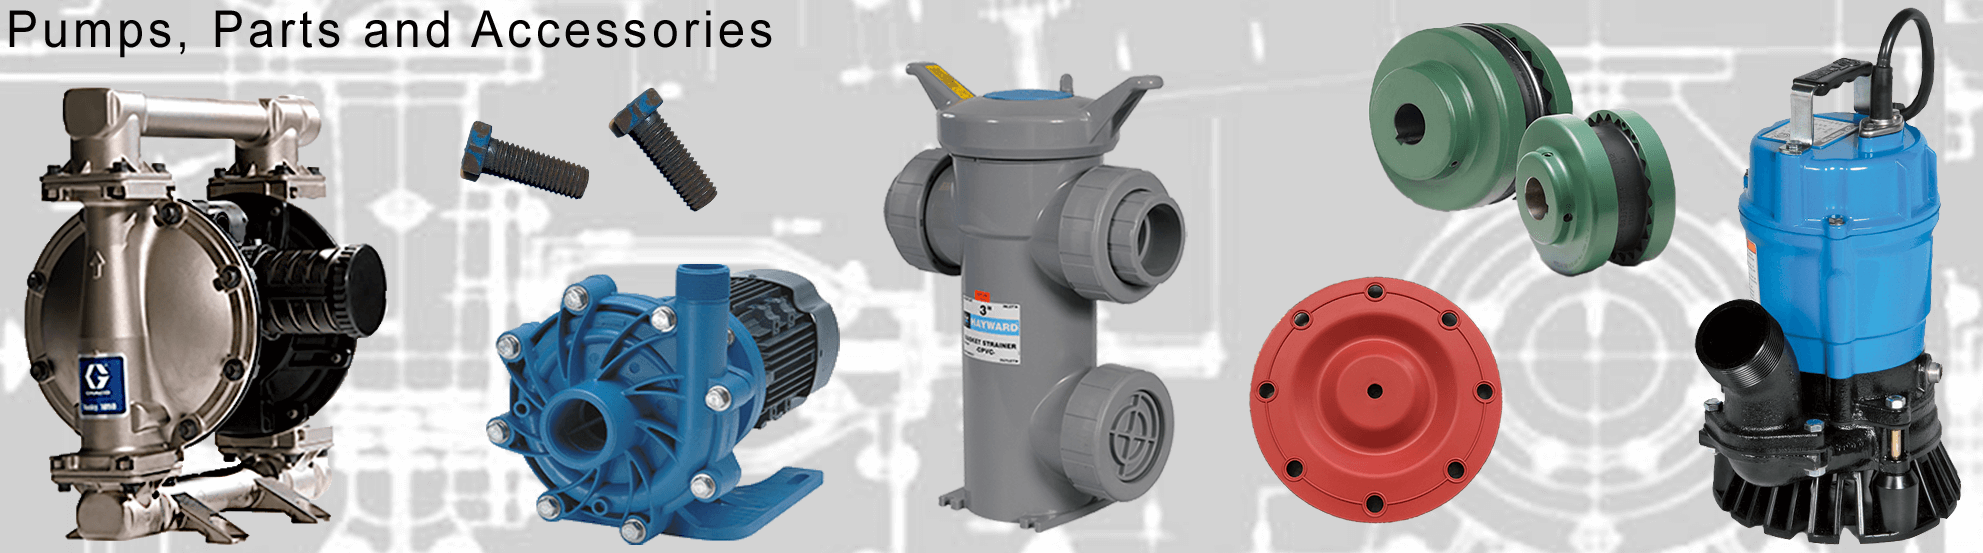 Pumps, Parts and Accessories